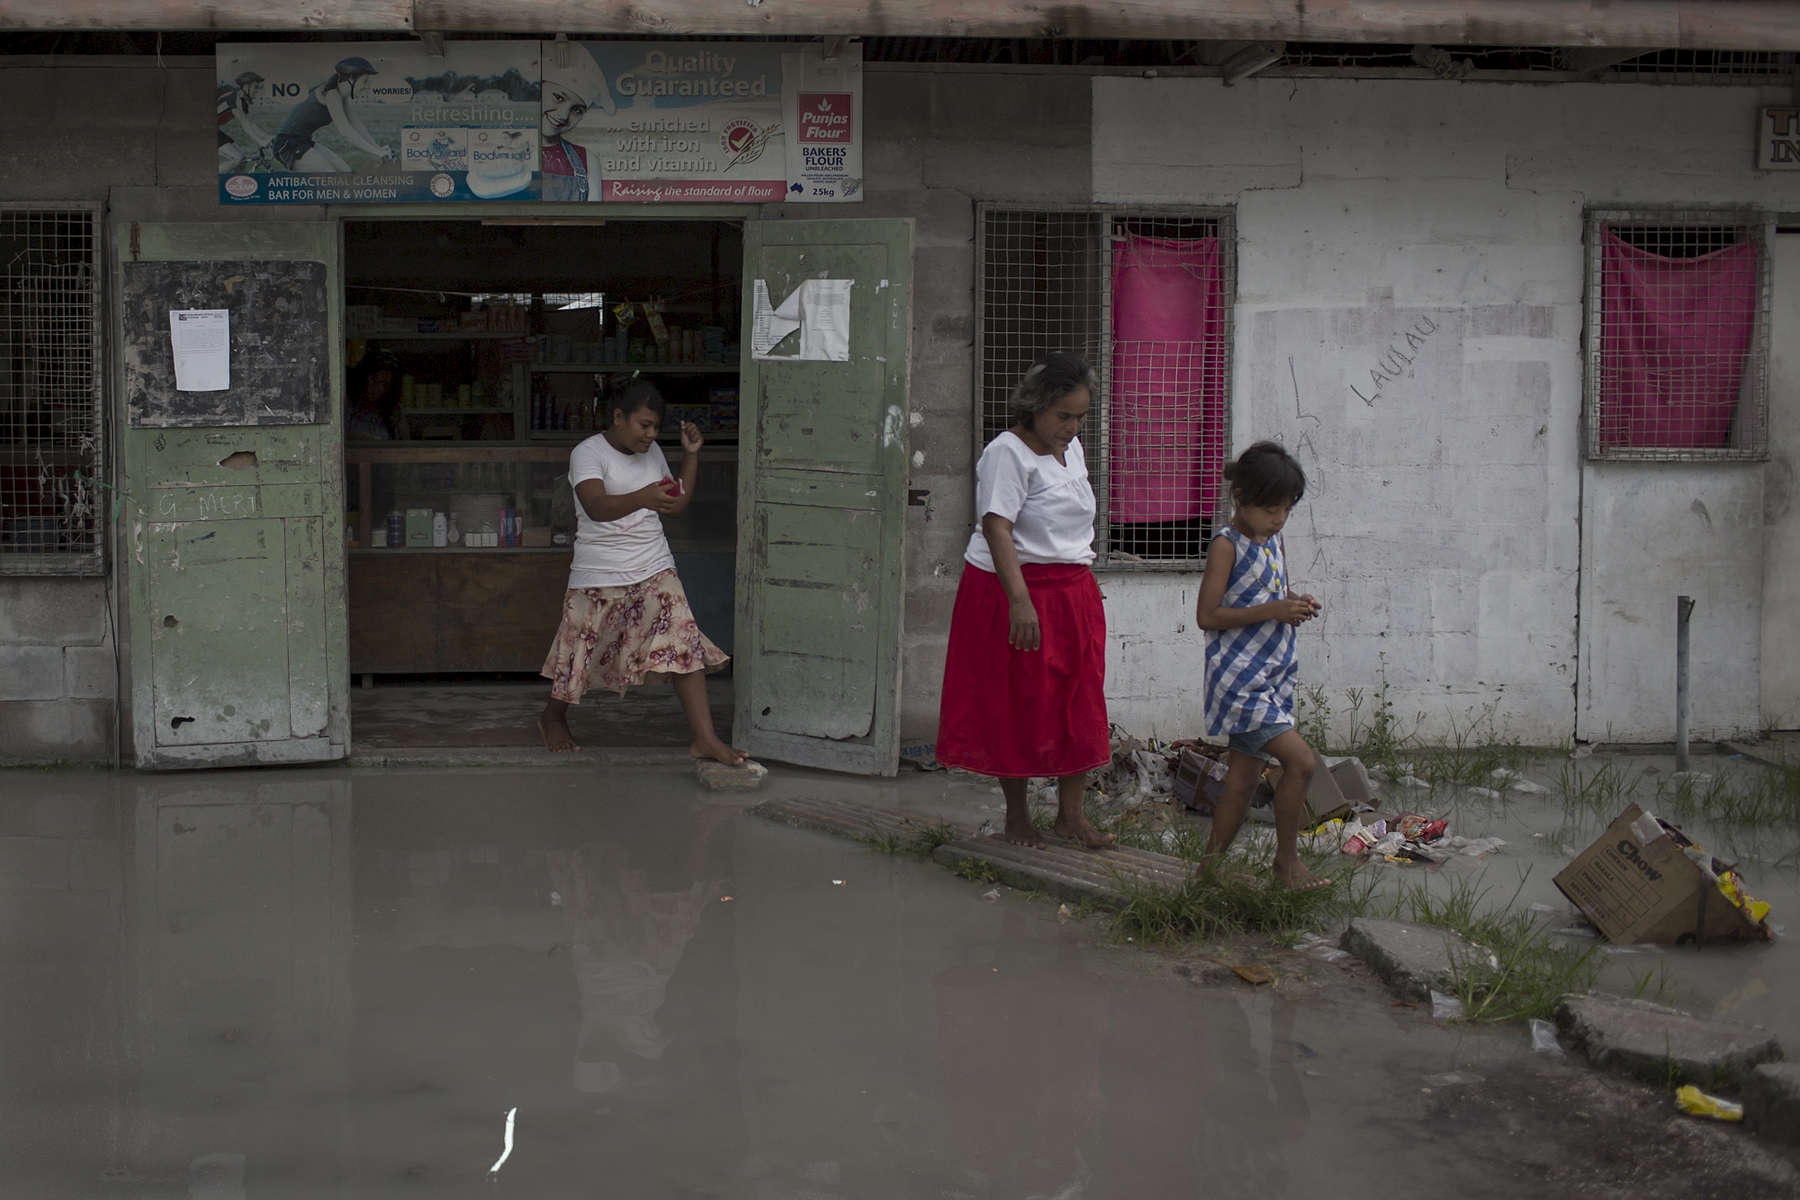 Women and a young girl leave a shop which experienced flash flooding around the outside of the shop after an early morning downpour.